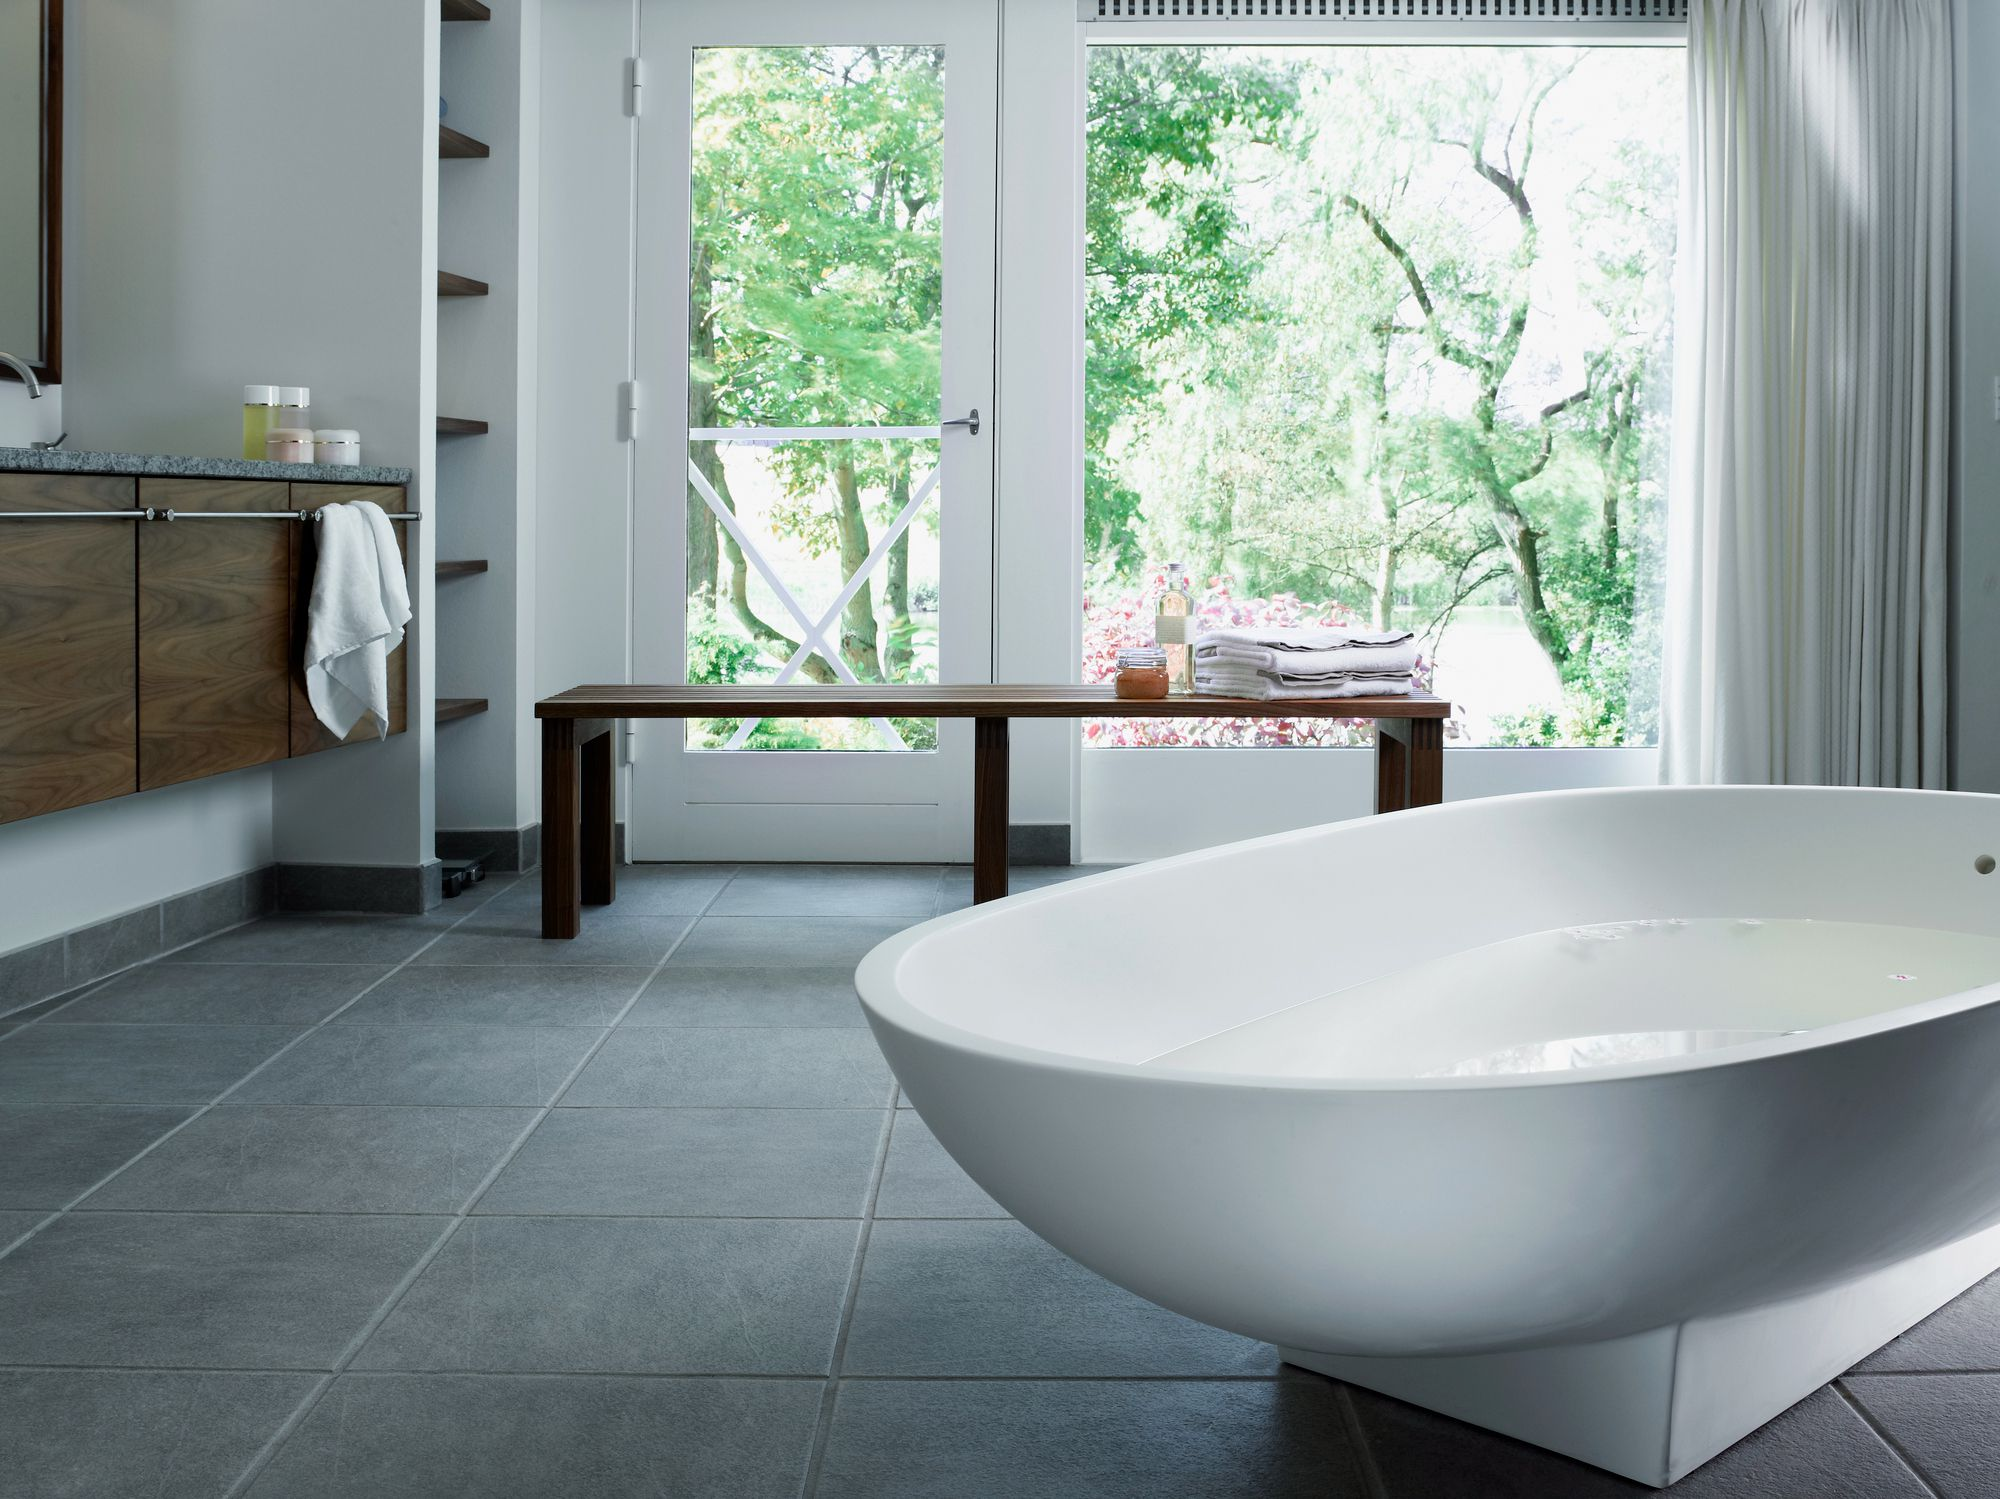 Bathroom vinyl tile vs ceramic tile porcelain vs ceramic tile do you know the difference dailygadgetfo Choice Image